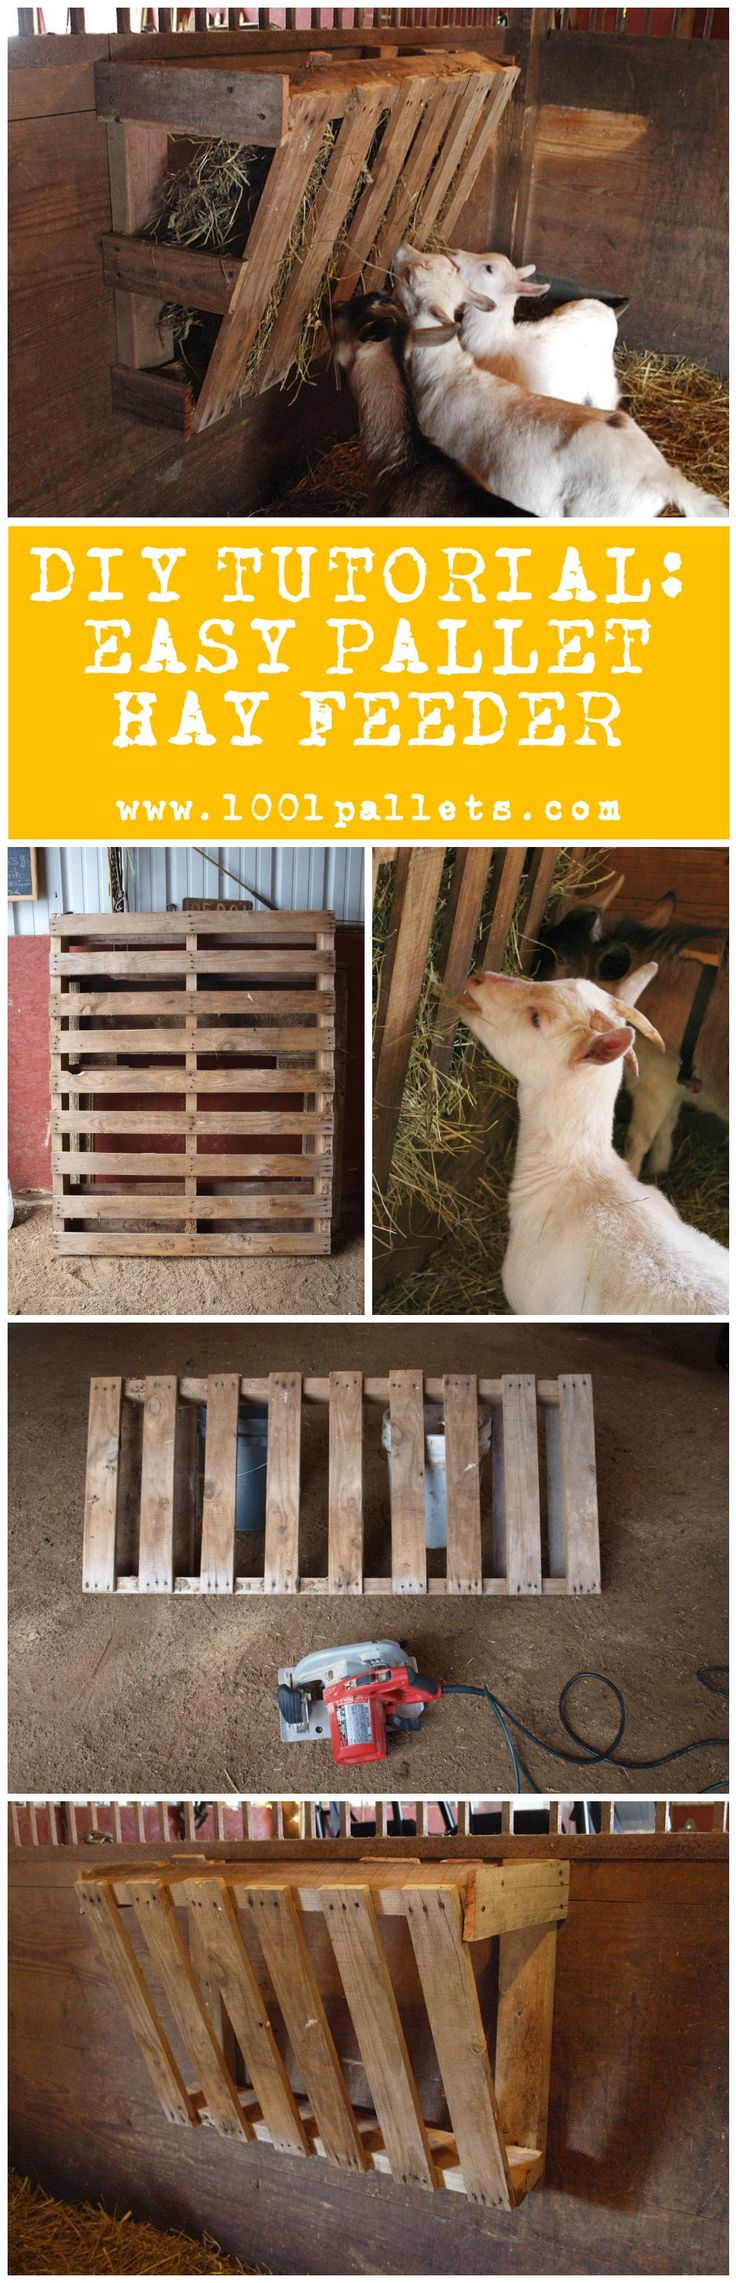 "Elizabeth Ohiothoughts from the blog ""Ohiothoughts"" in collaboration with 1001Pallets will describe how to make an easy pallet hay feeder …"